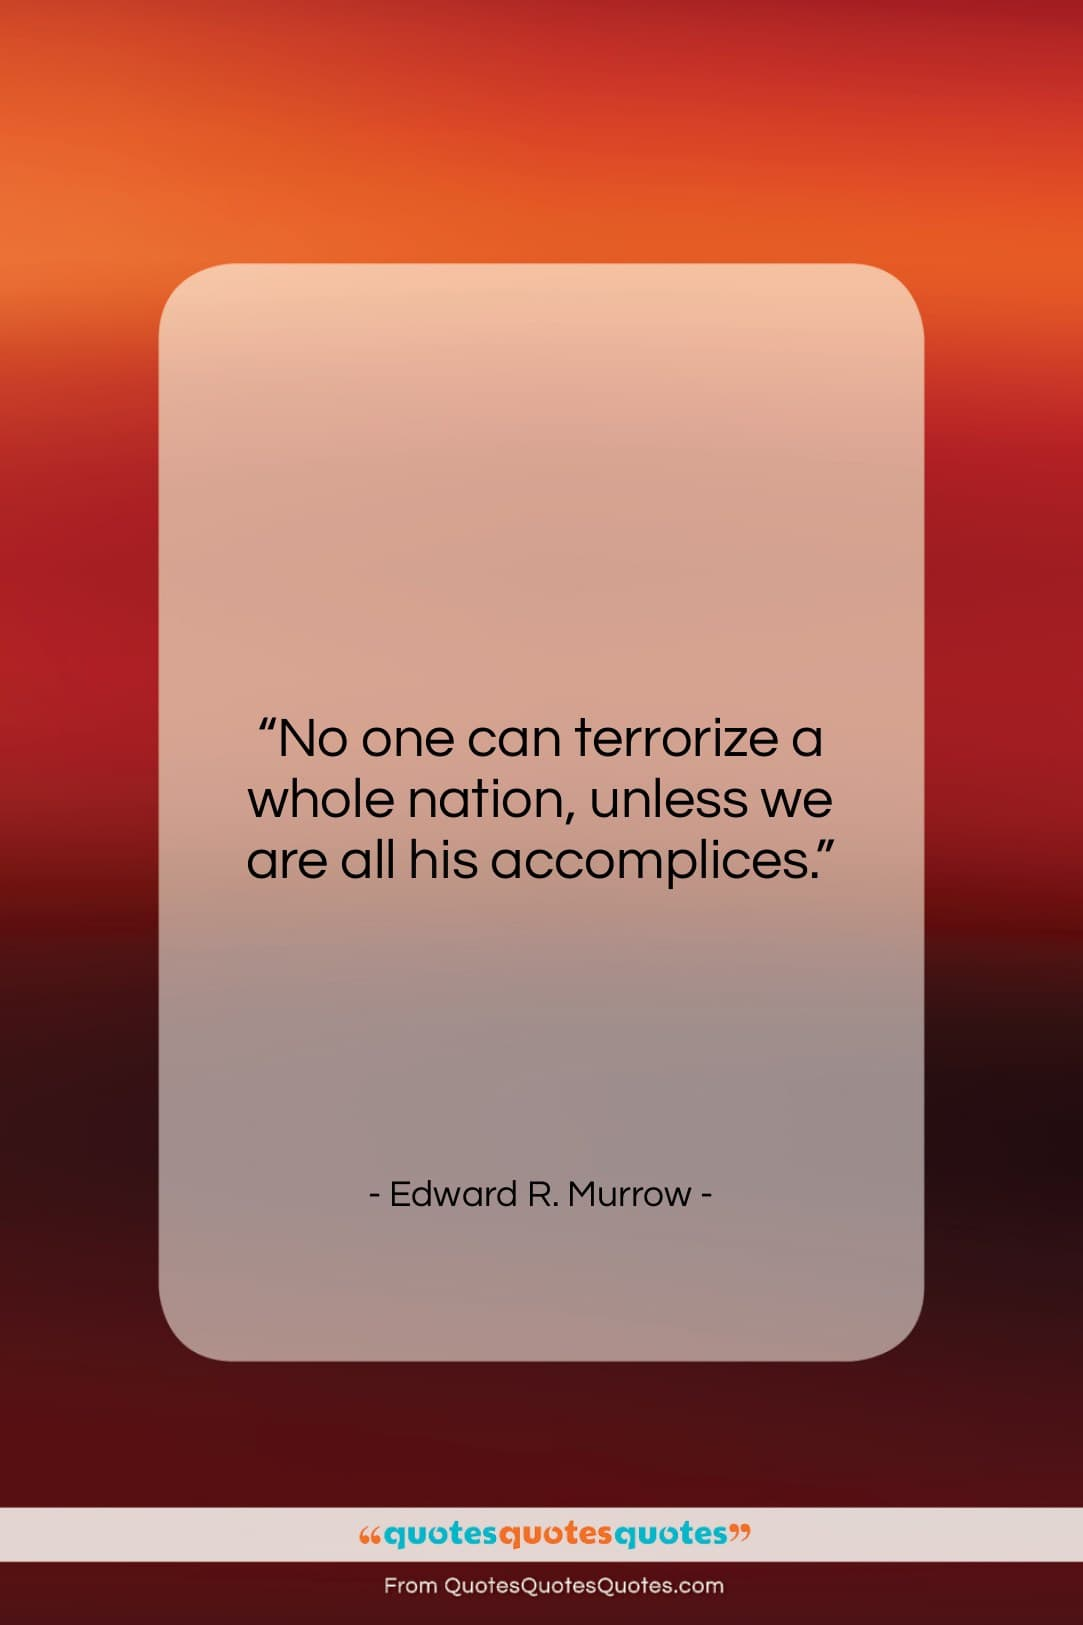 """Edward R. Murrow quote: """"No one can terrorize a whole nation,…""""- at QuotesQuotesQuotes.com"""